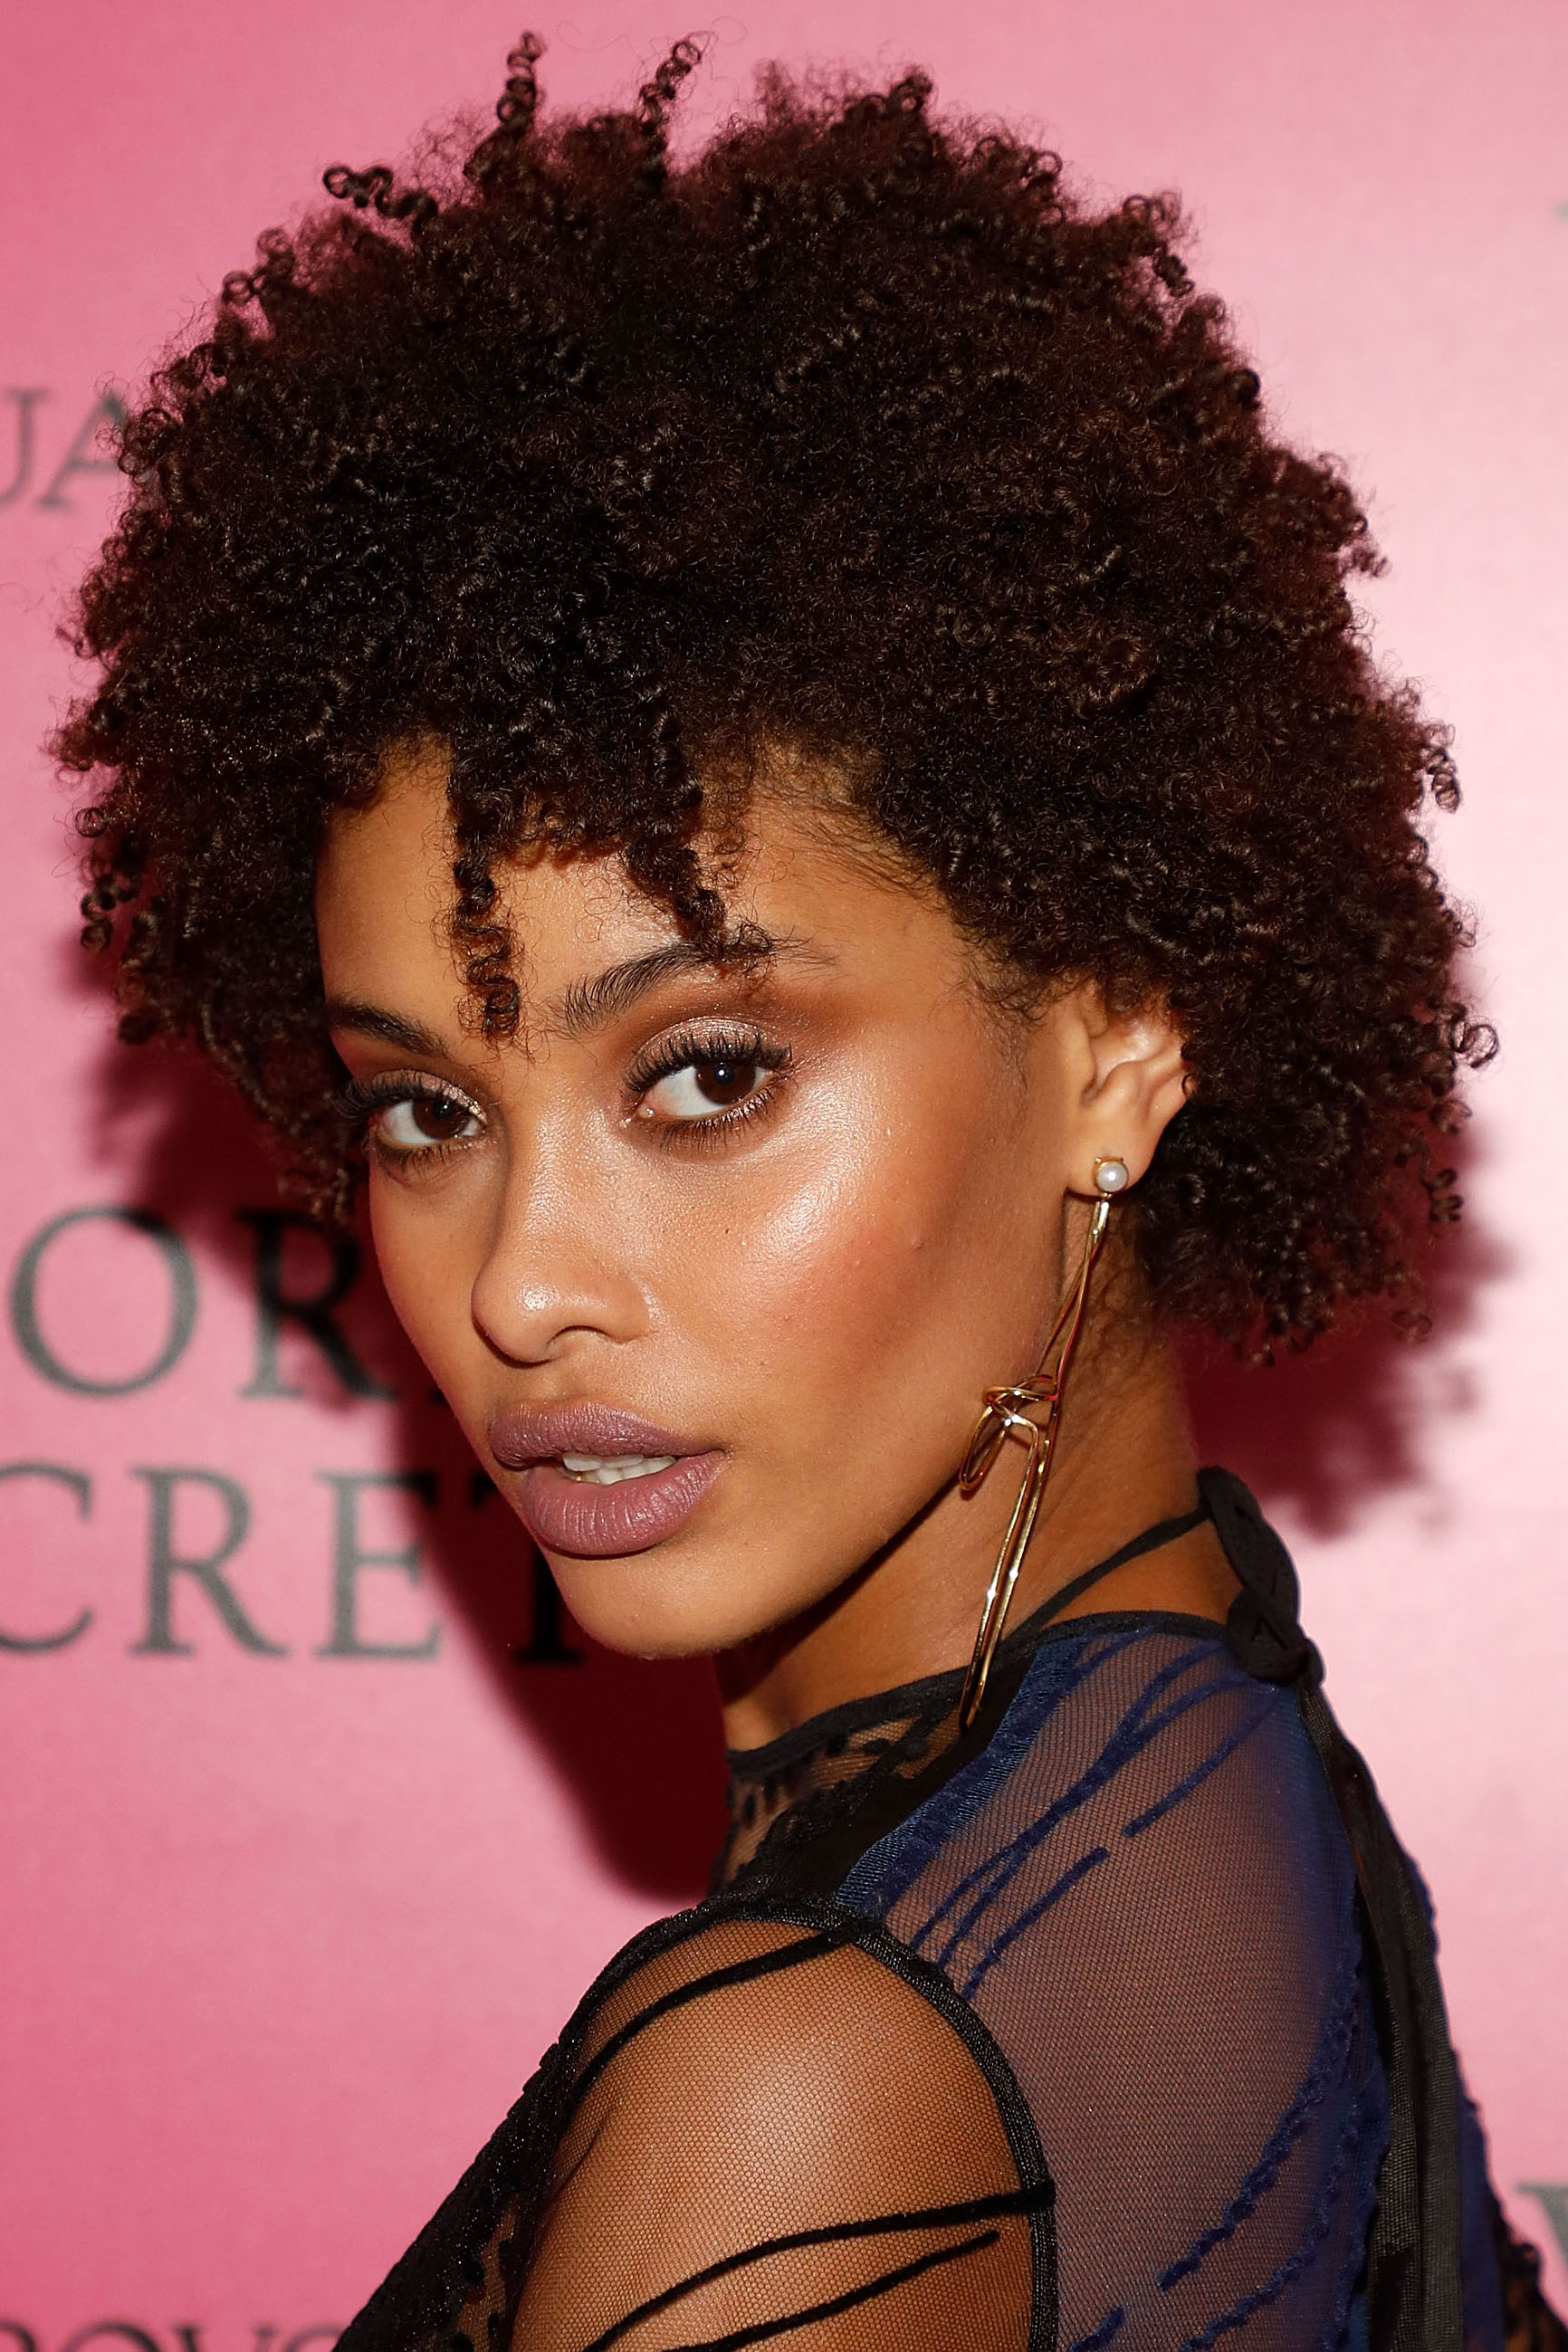 25 Easy Natural Hairstyles for Black Women  Ideas for Short Medium Length and Long Natural Hair